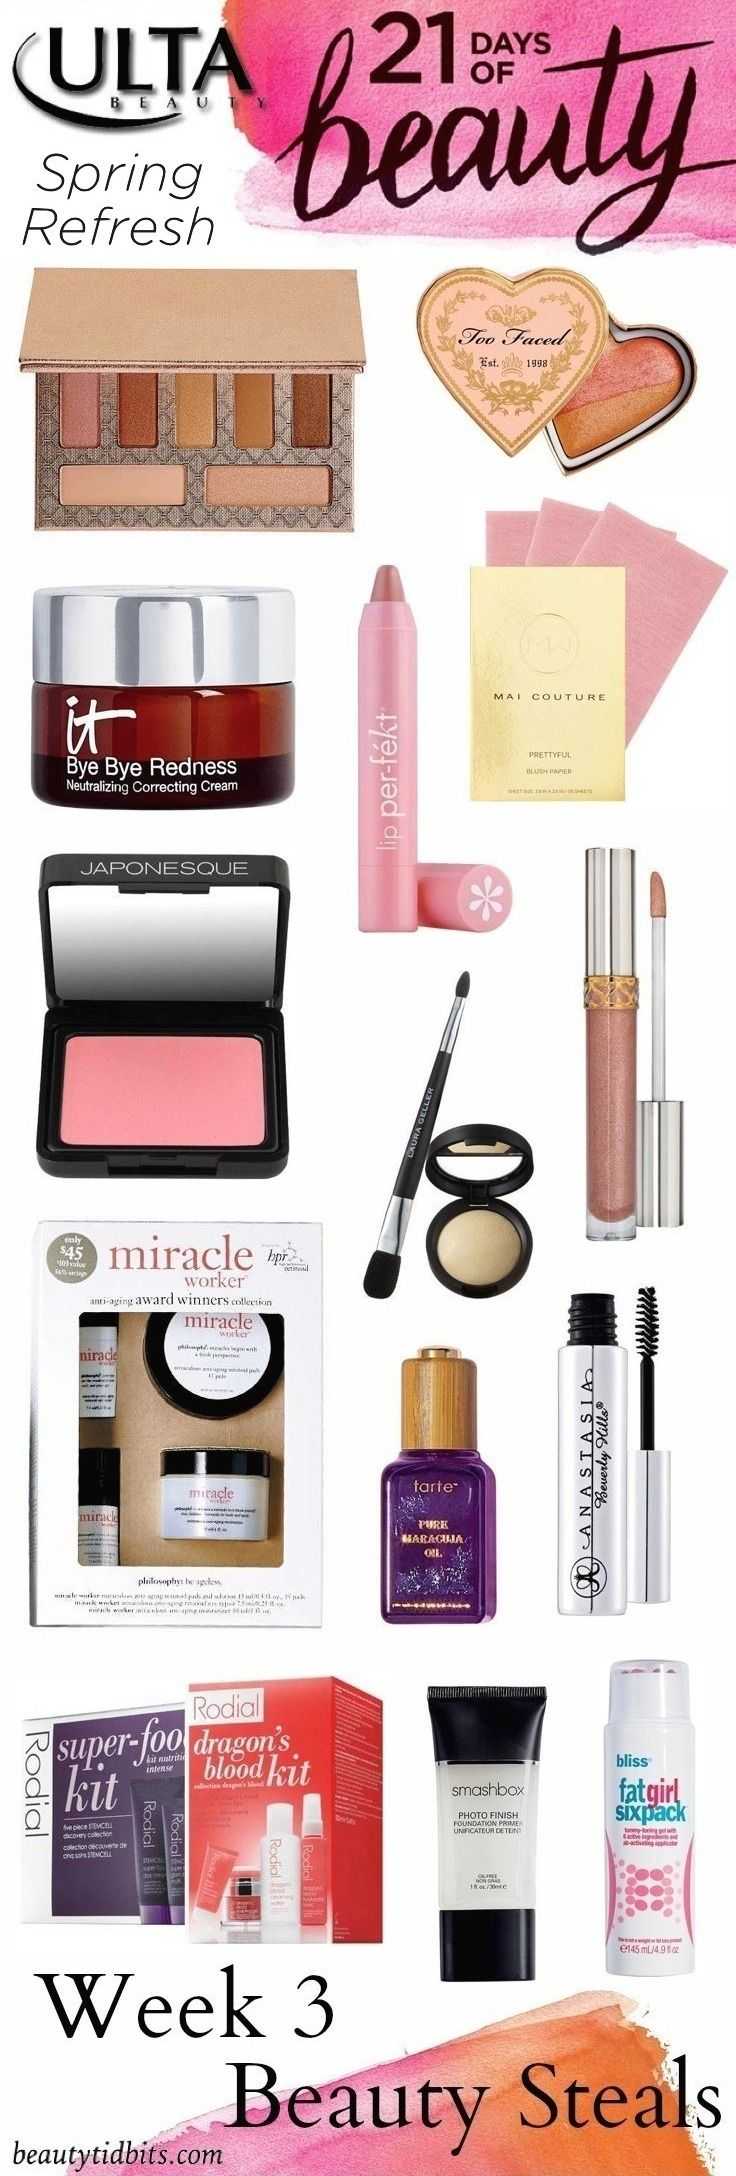 1010 best health and beauty images on pinterest make up beauty